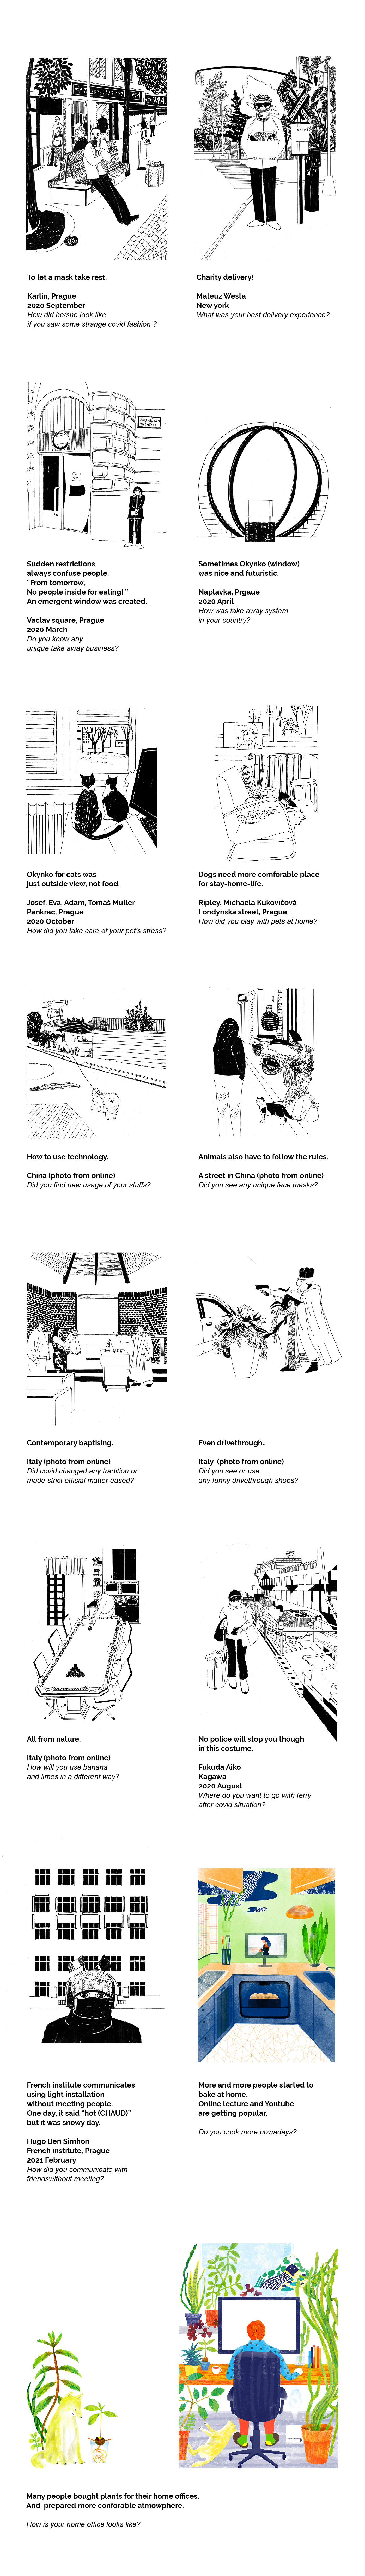 adovecreativeresidency Collection COVid diaryillustration ILLUSTRATION  reportage